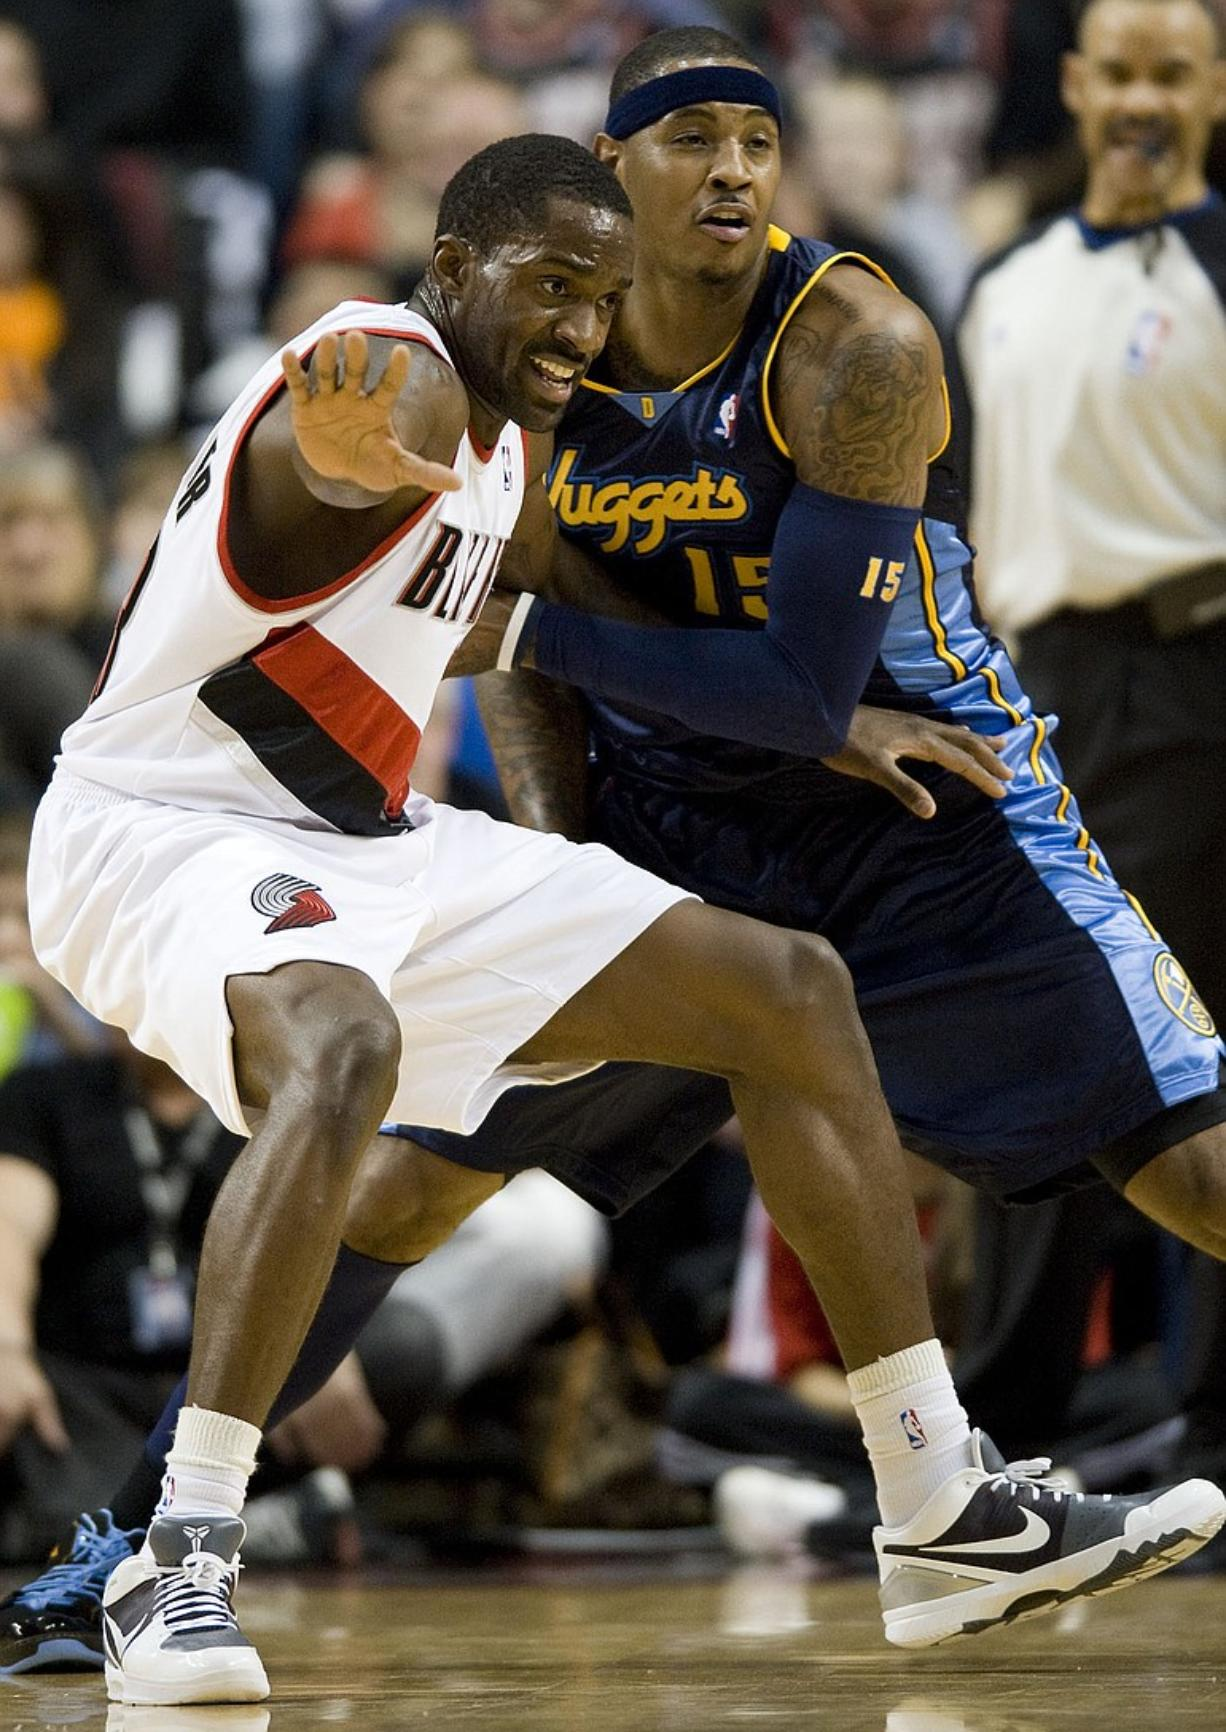 Martell Webster, being guarded by Denver's Carmelo Anthony, has continued to show growth on the basketball court.